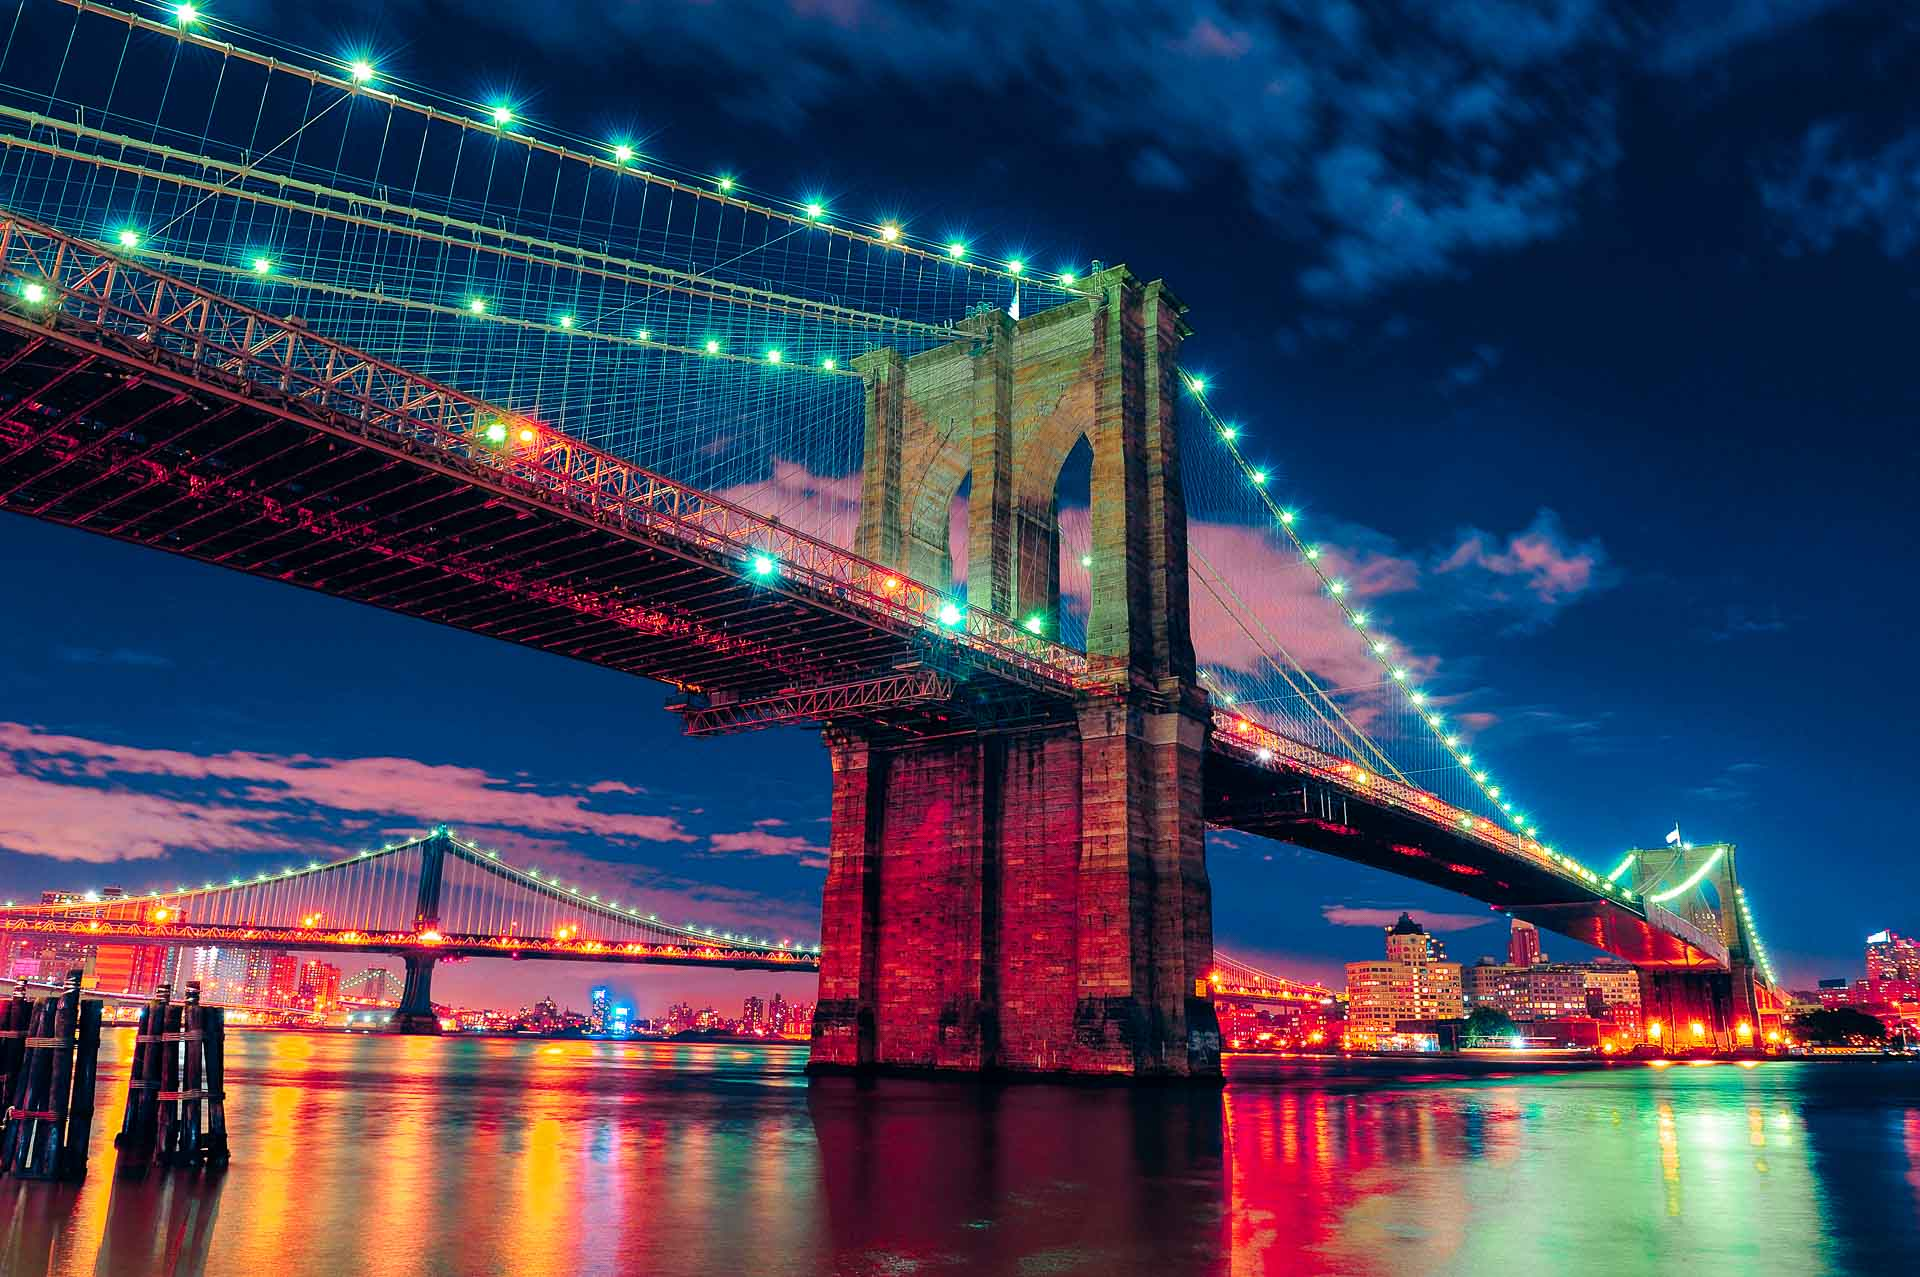 the Brooklyn Bridge at night in New York City